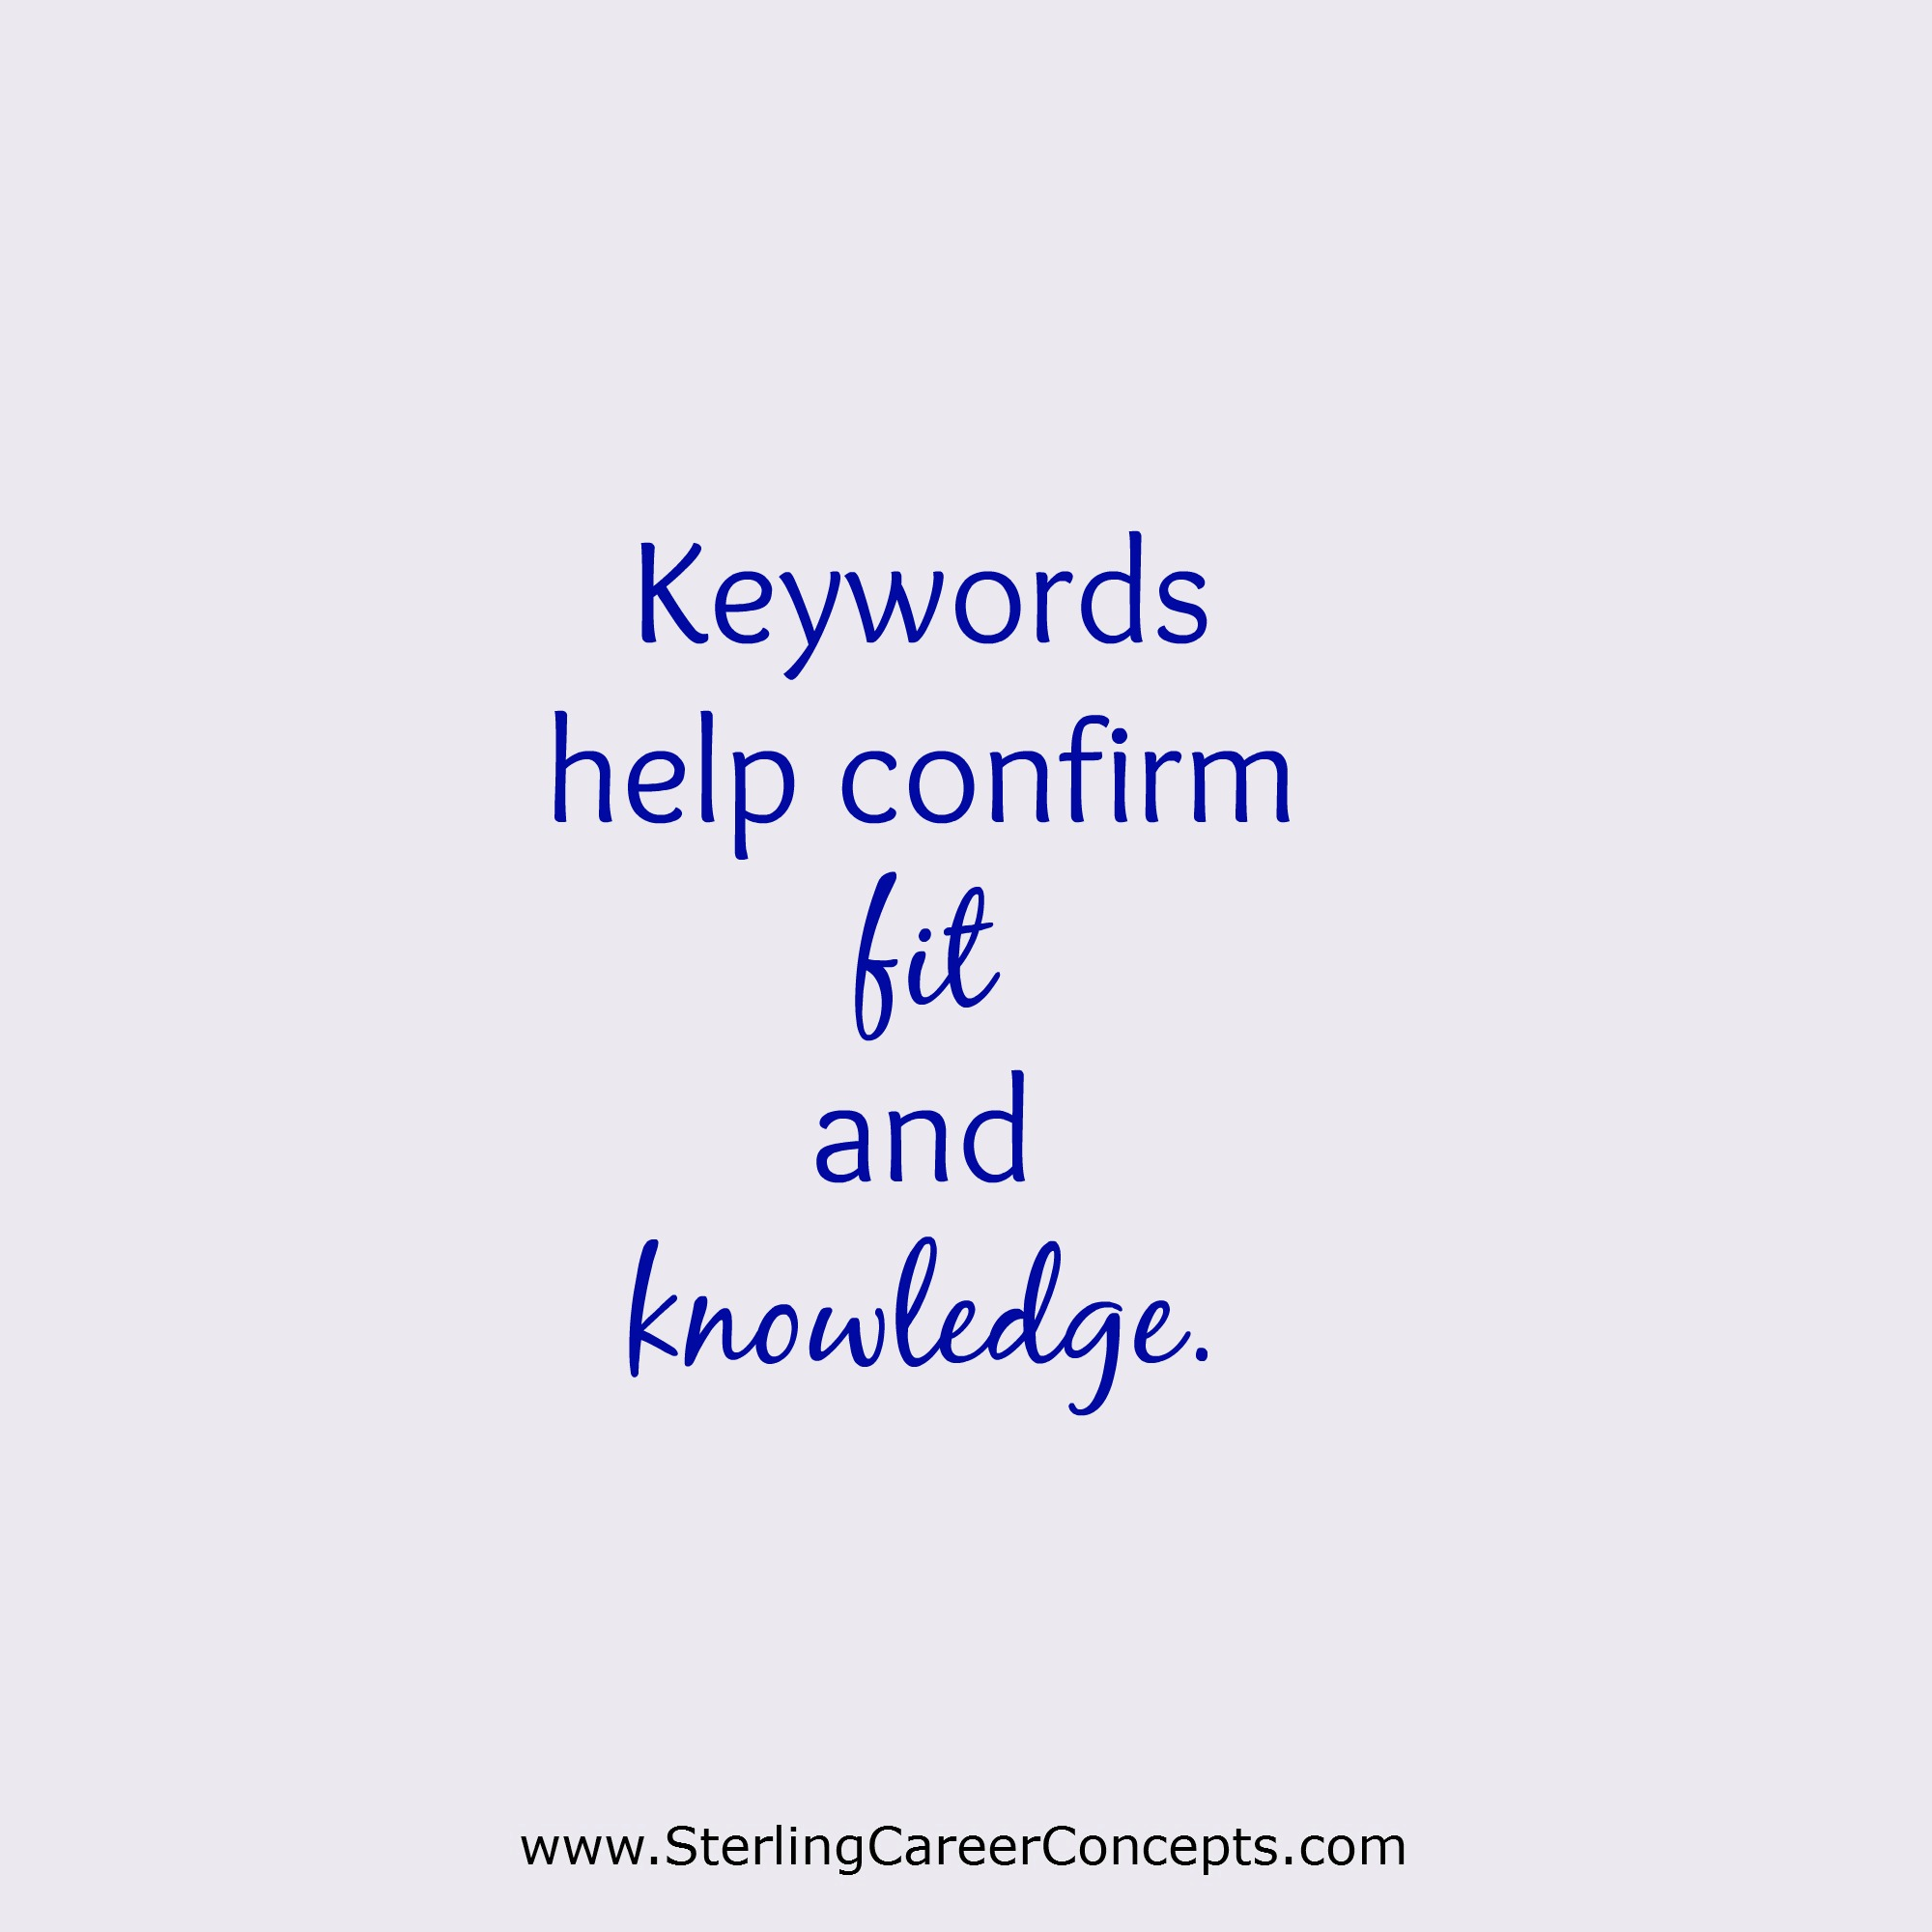 Key Words For Resumes | How To Use Keywords In A Job Search Sterling Career Concepts